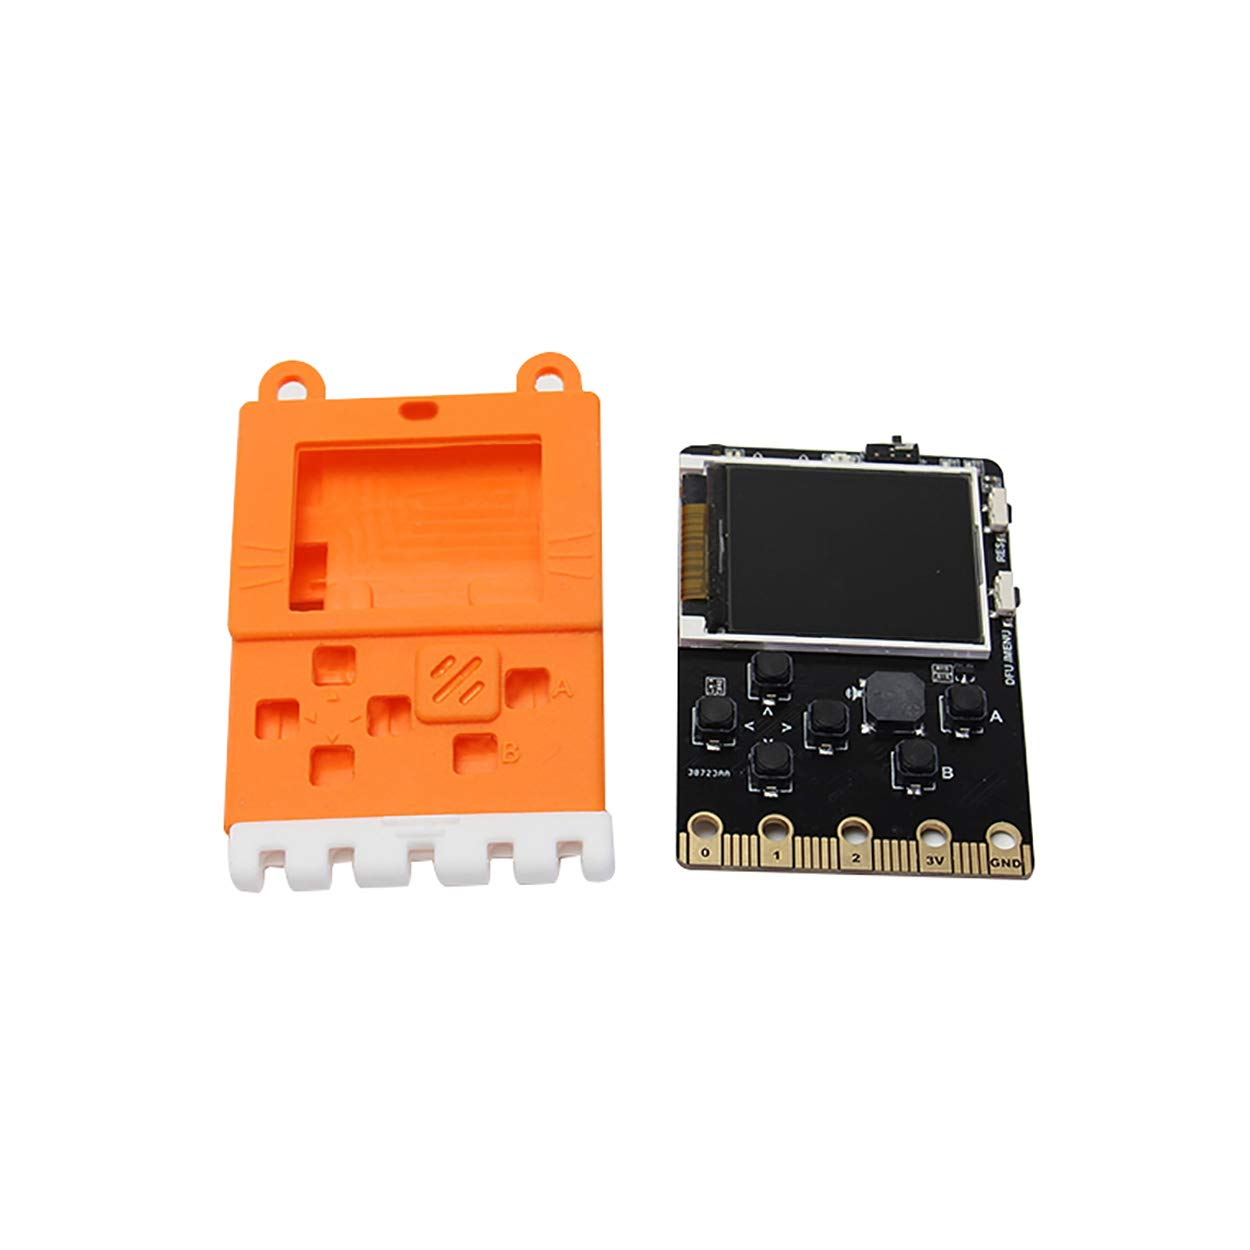 Kittenbot Meowbit Card-Sized Retro Game Computer Codable Console for Microsoft Makecode Arcade and Python Video Game Console Compatible with Micro:bit Expansion Board for Robot Building(Orange) by KittenBot (Image #2)